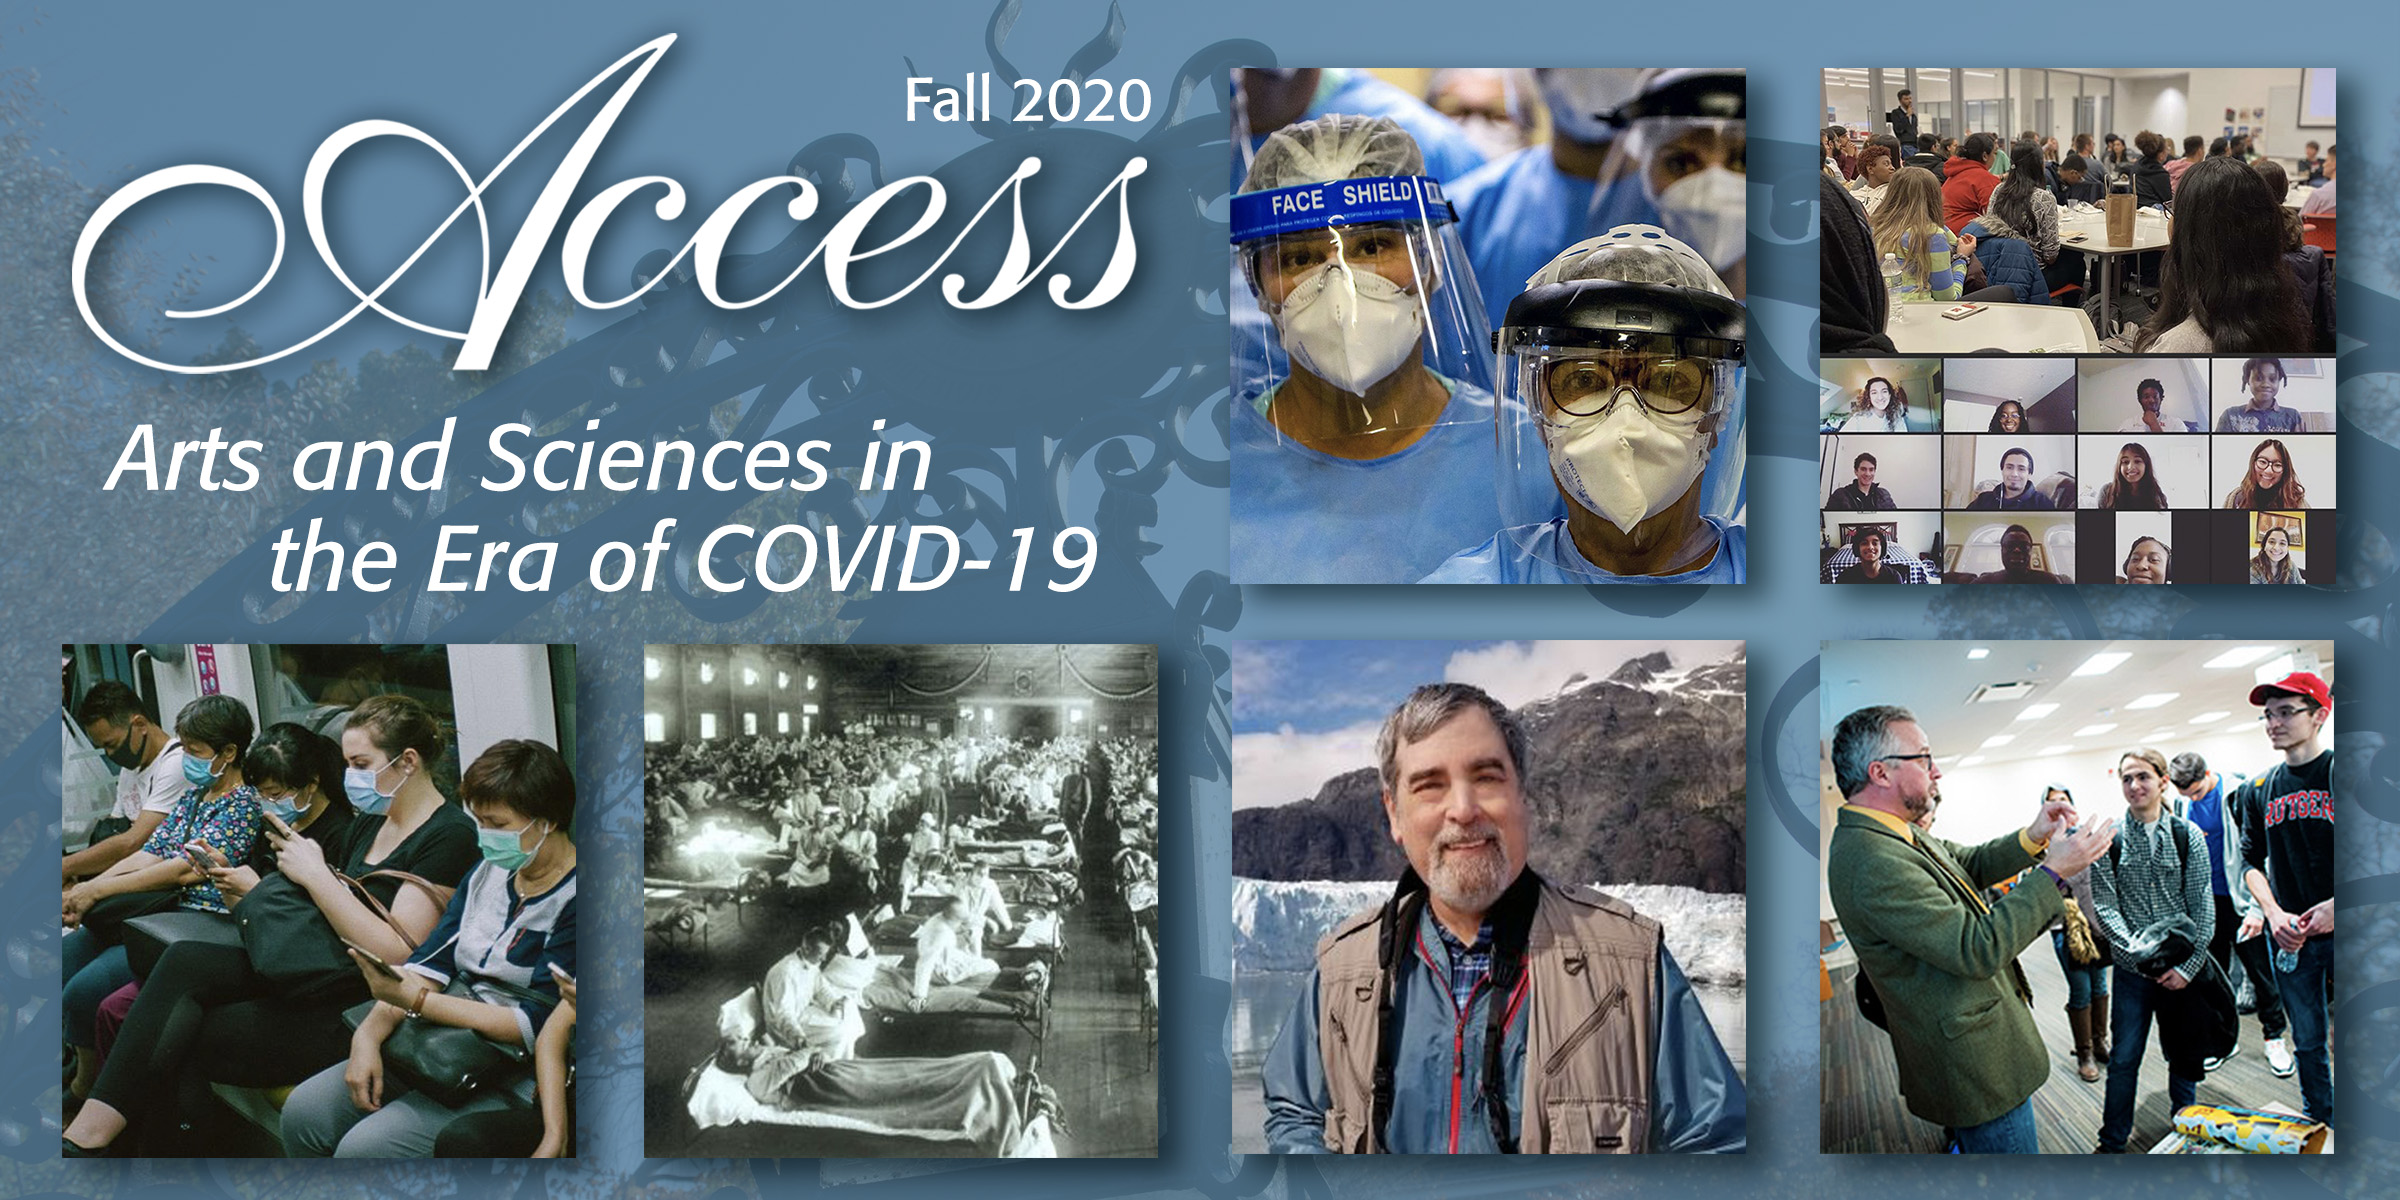 Access Fall 2020: Arts and Sciences in the Era of COVID-19